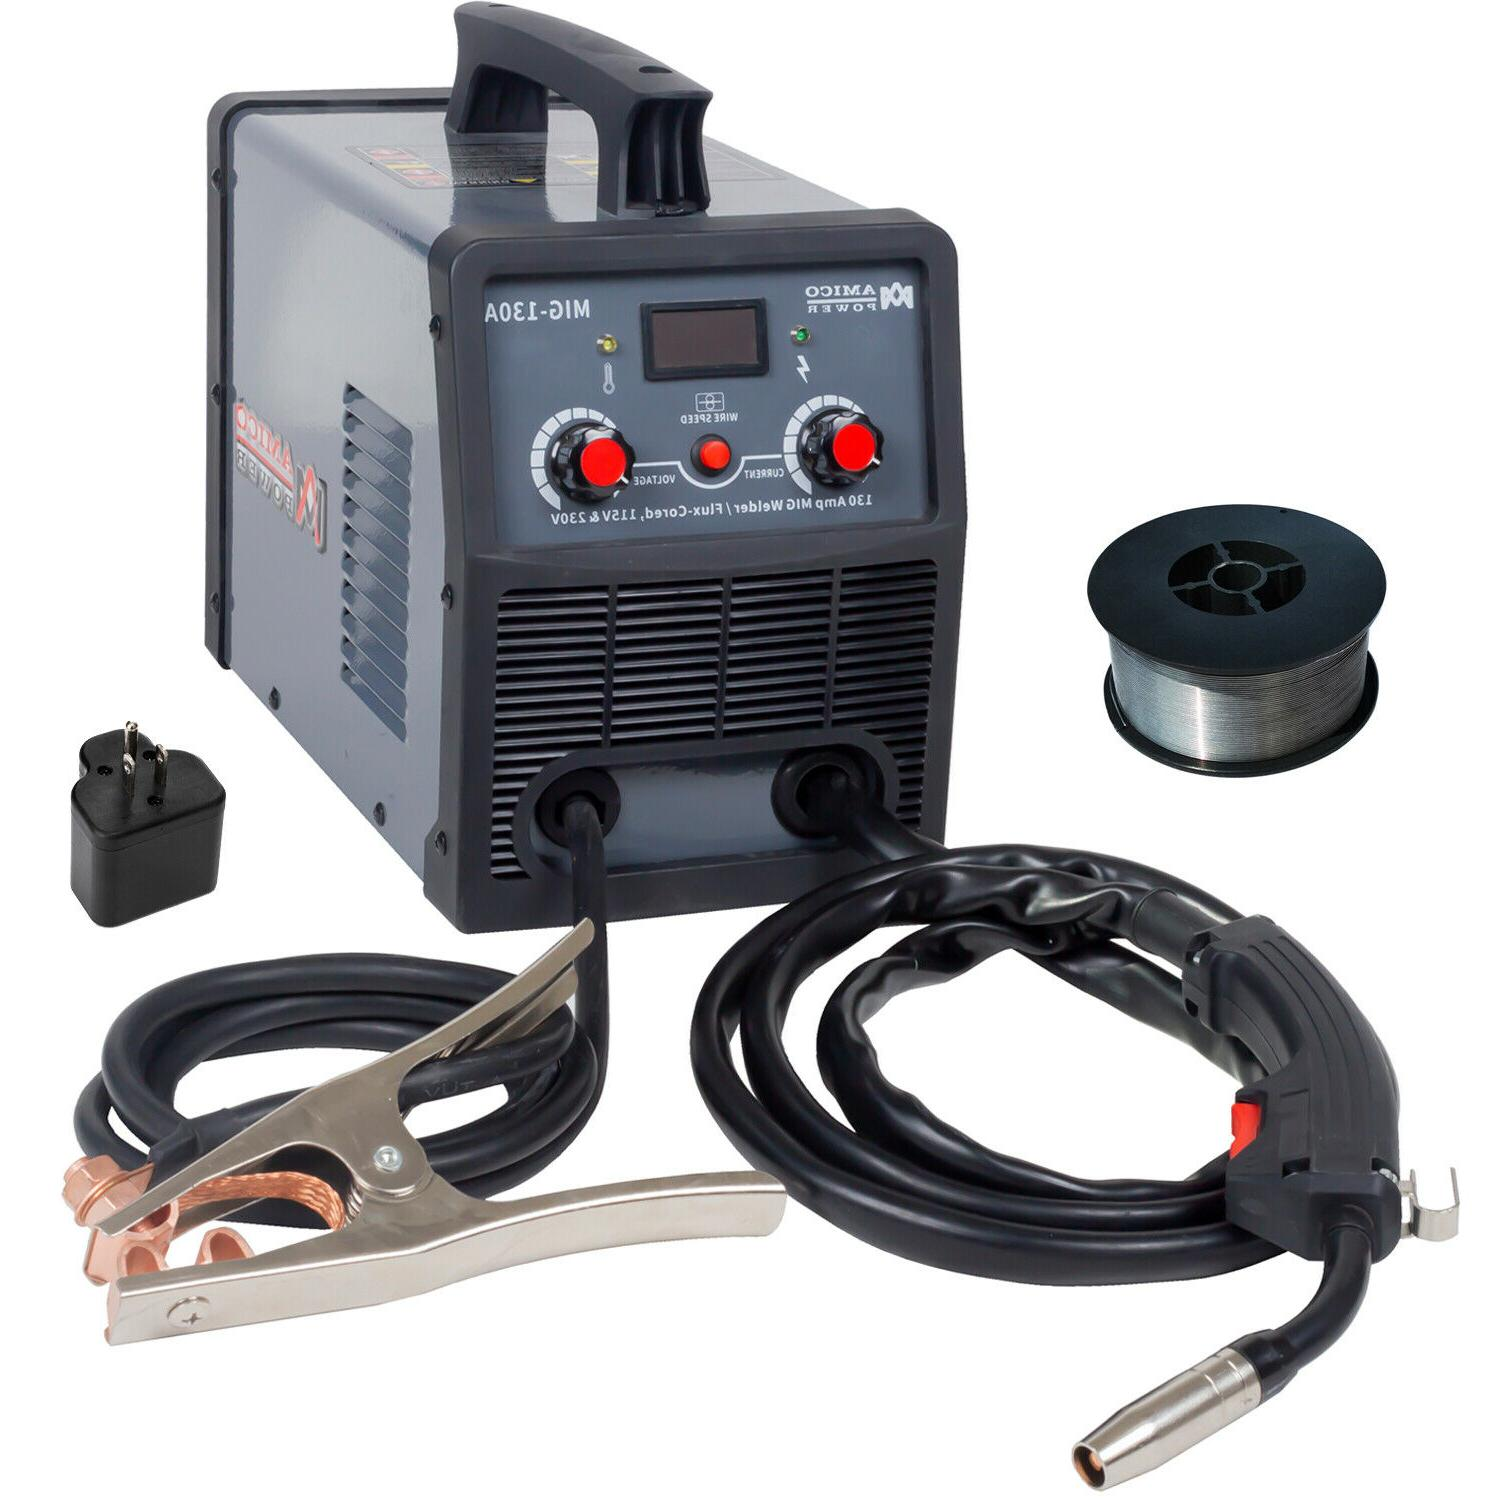 Amico MIG-130A, Amp Flux Core Gasless Welder, 115/230V Dual